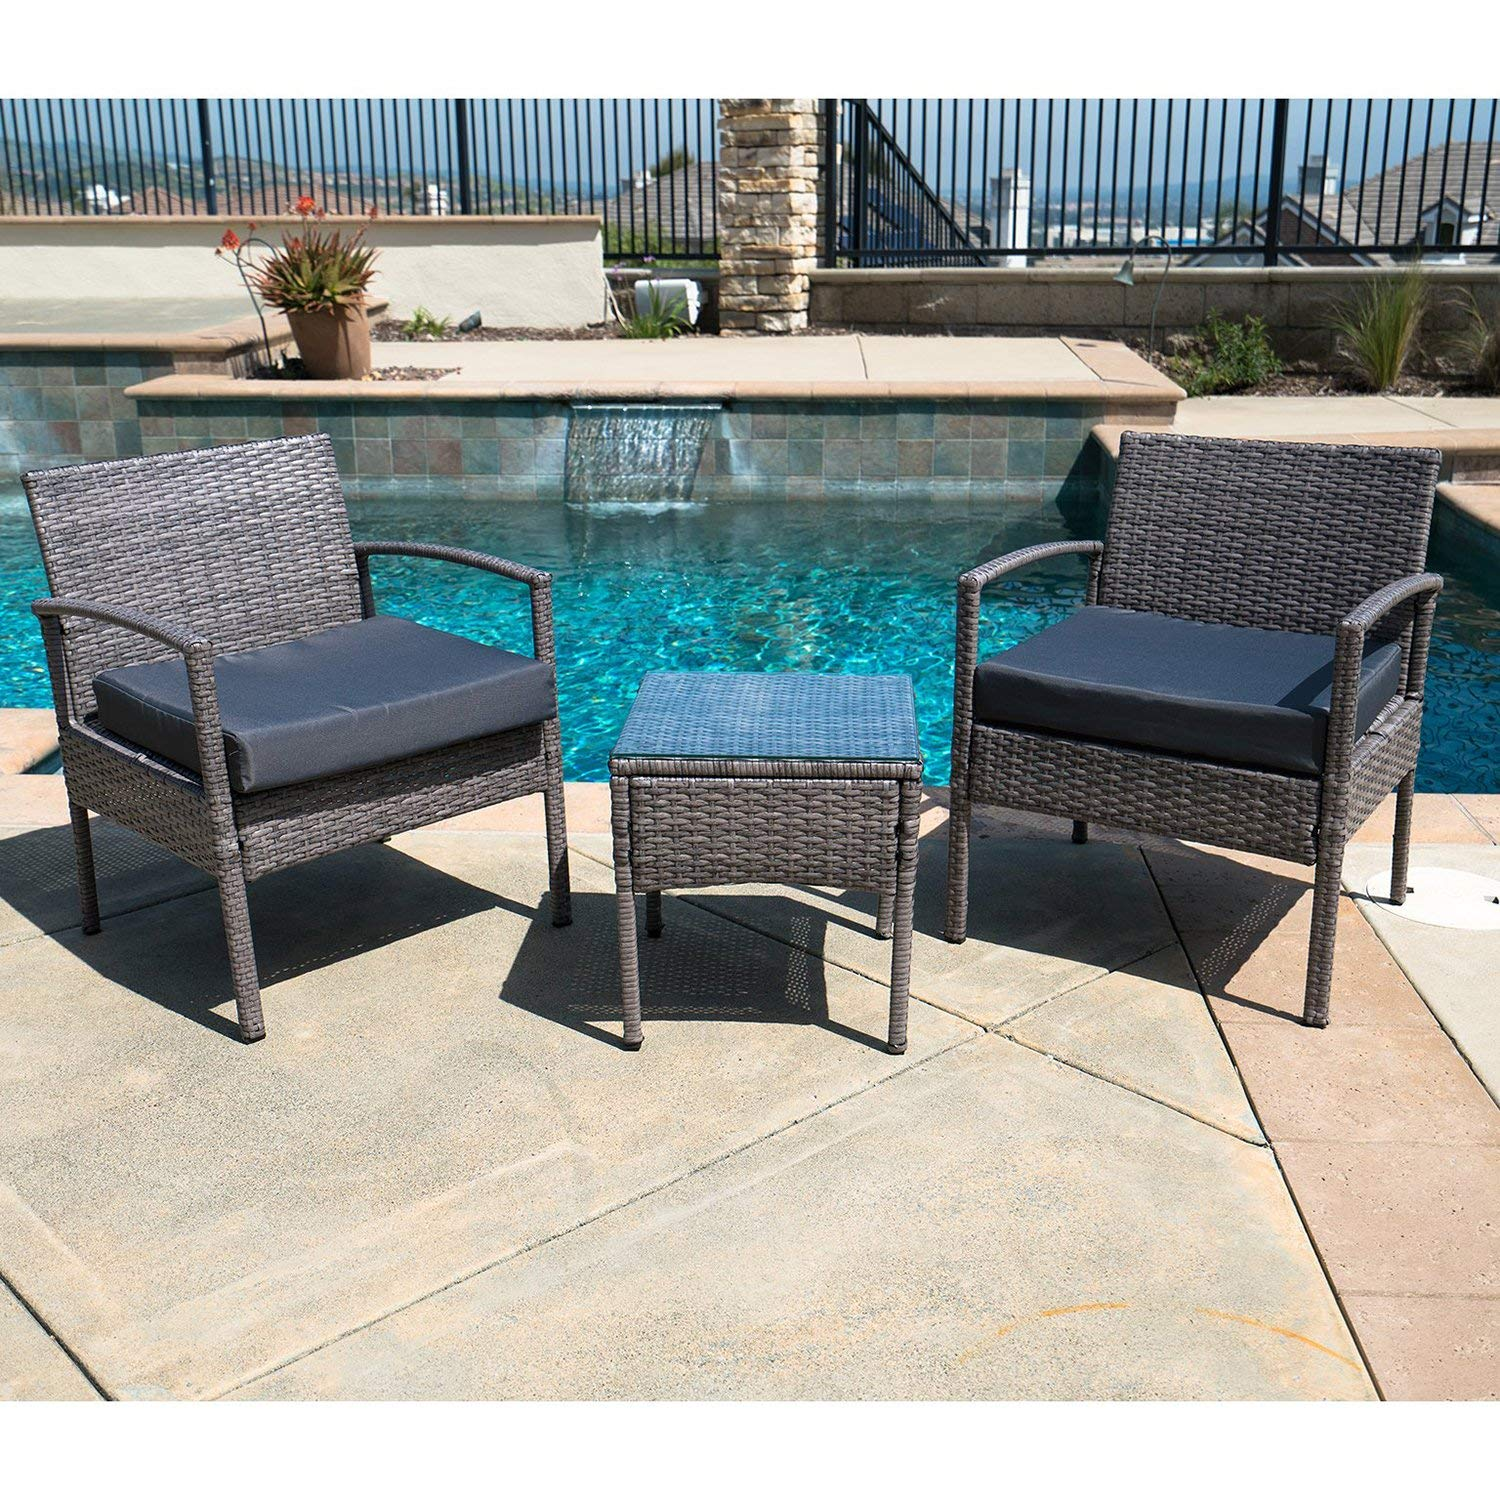 Outdoor Patio Furniture Set 3 Pieces Wicker Patio Set with Cushions Table & Two Single Sofas Gray Finish and Light Navy Cushions Outdoor Furniture Lawn Rattan Garden Set